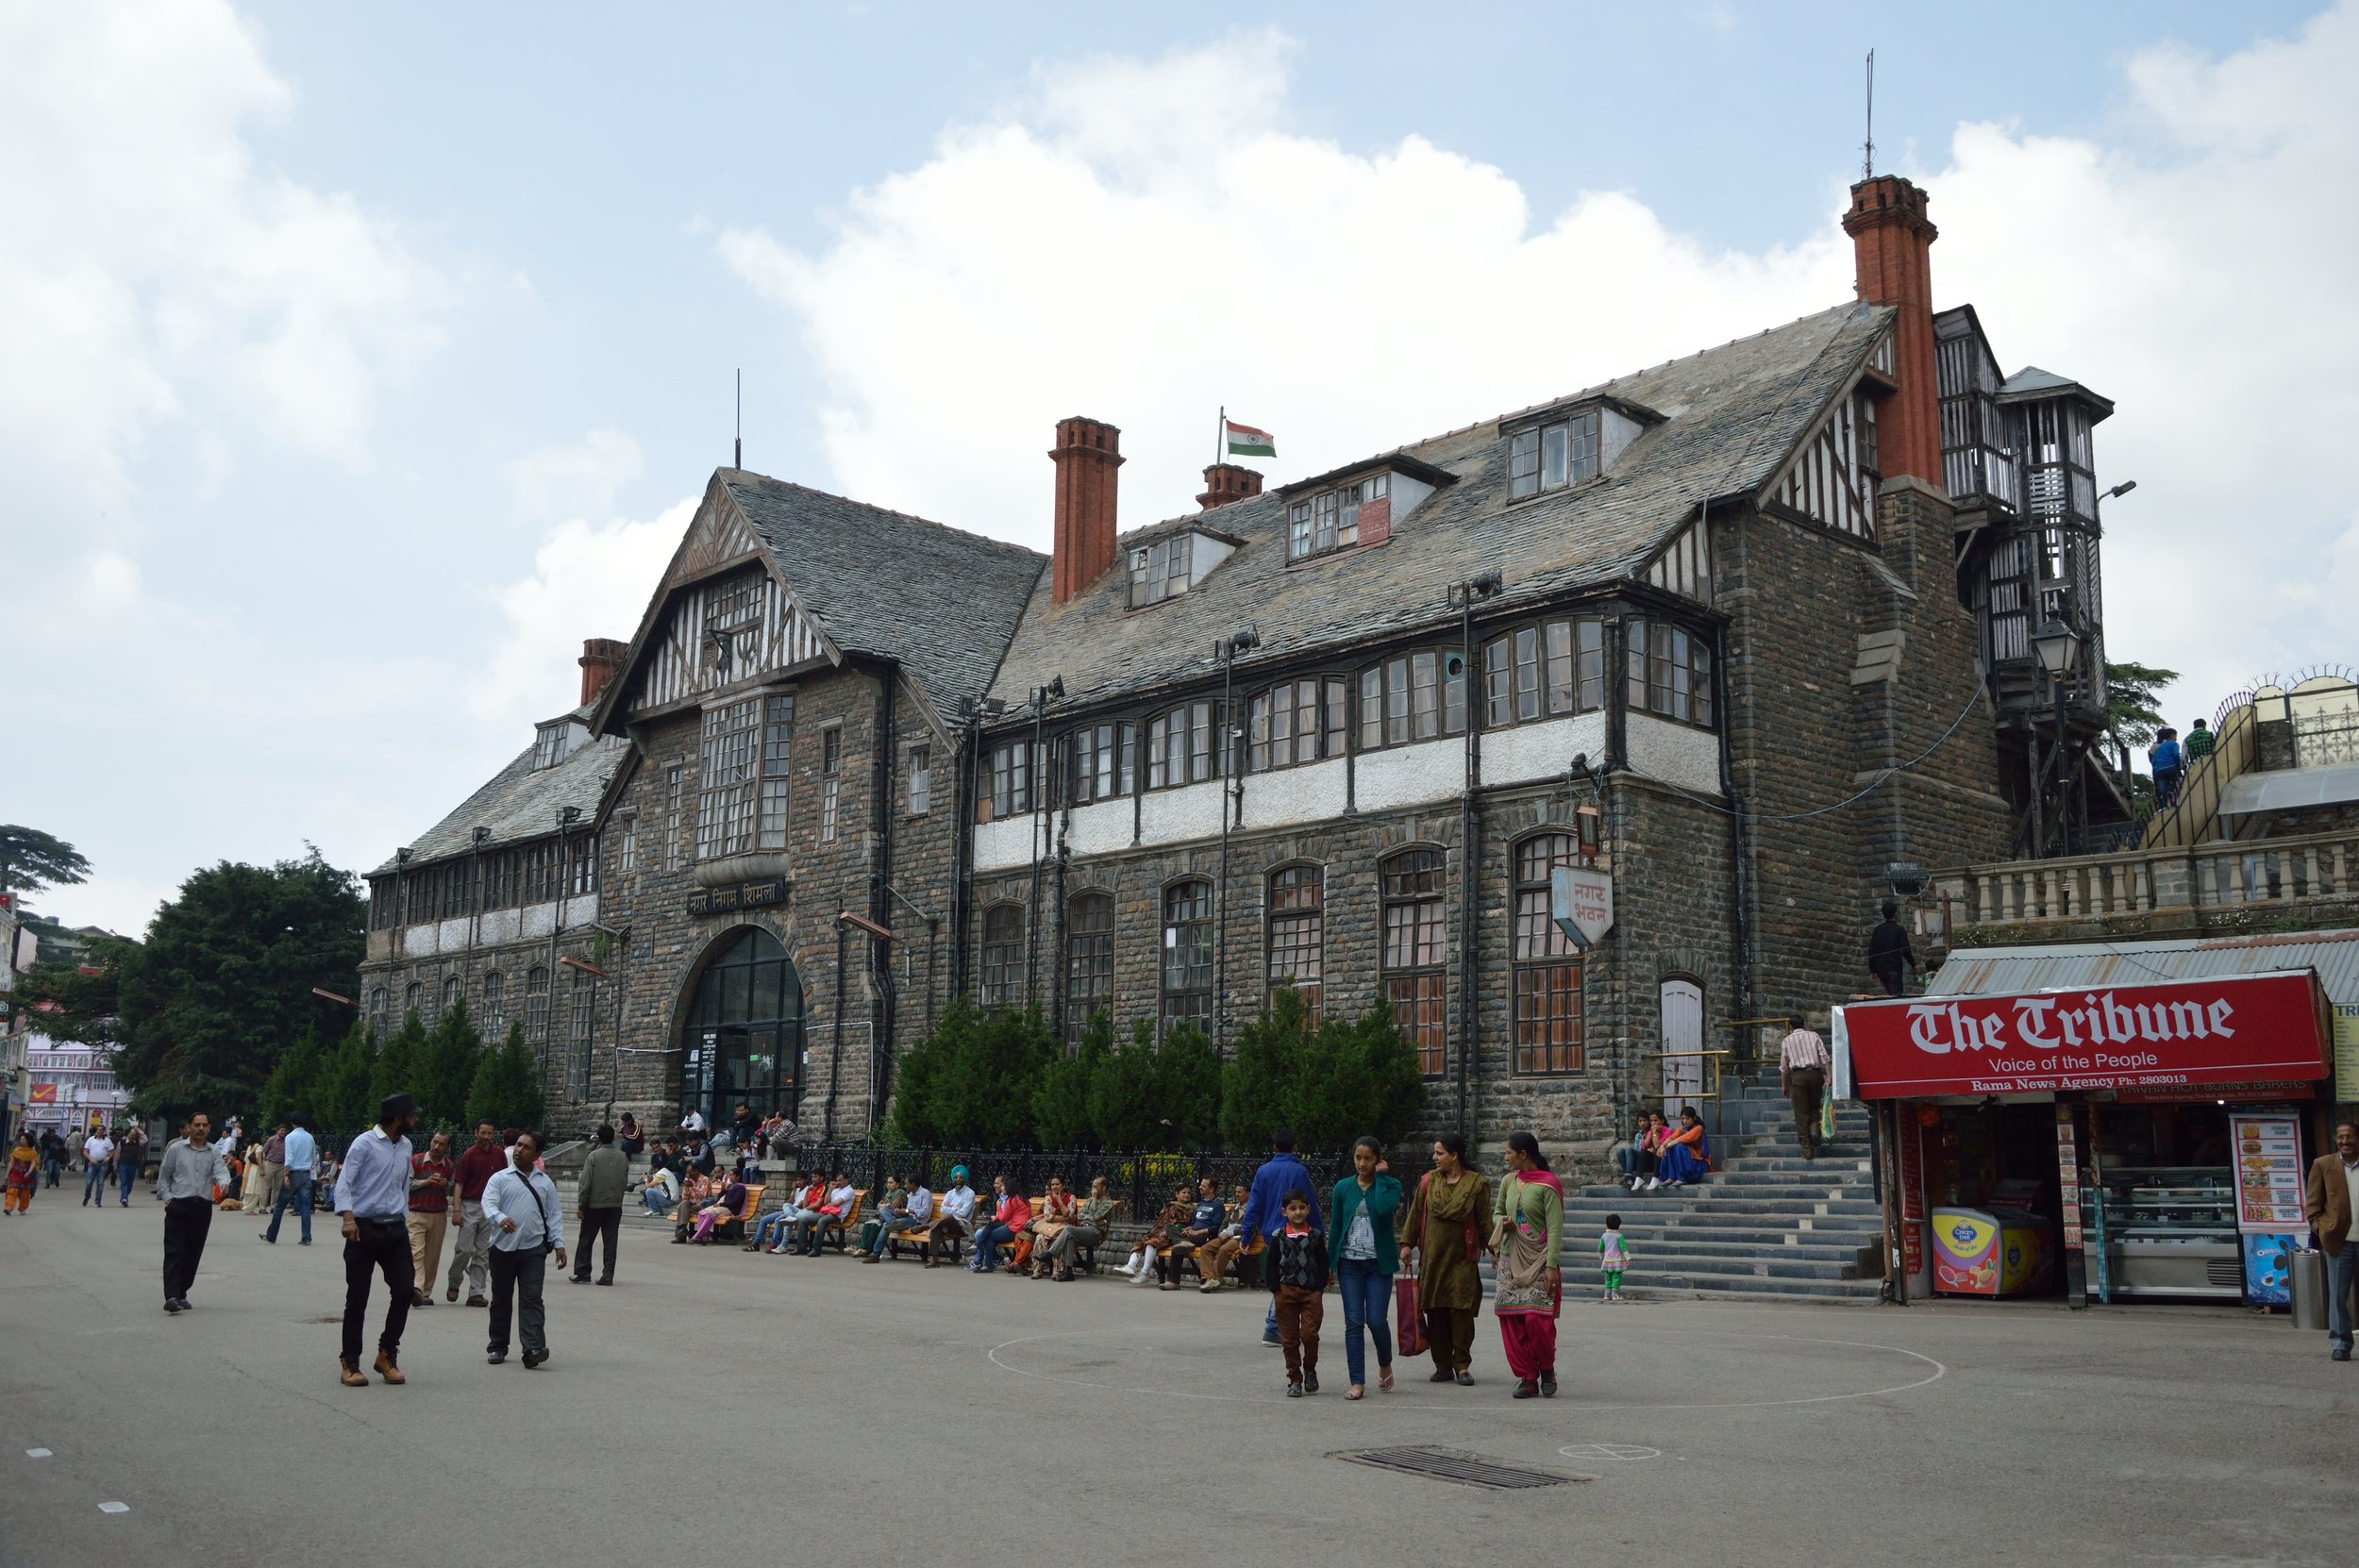 Municipal_Corporation_Building_-_Mall_Road_-_Shimla_2014-05-07_1108.JPG